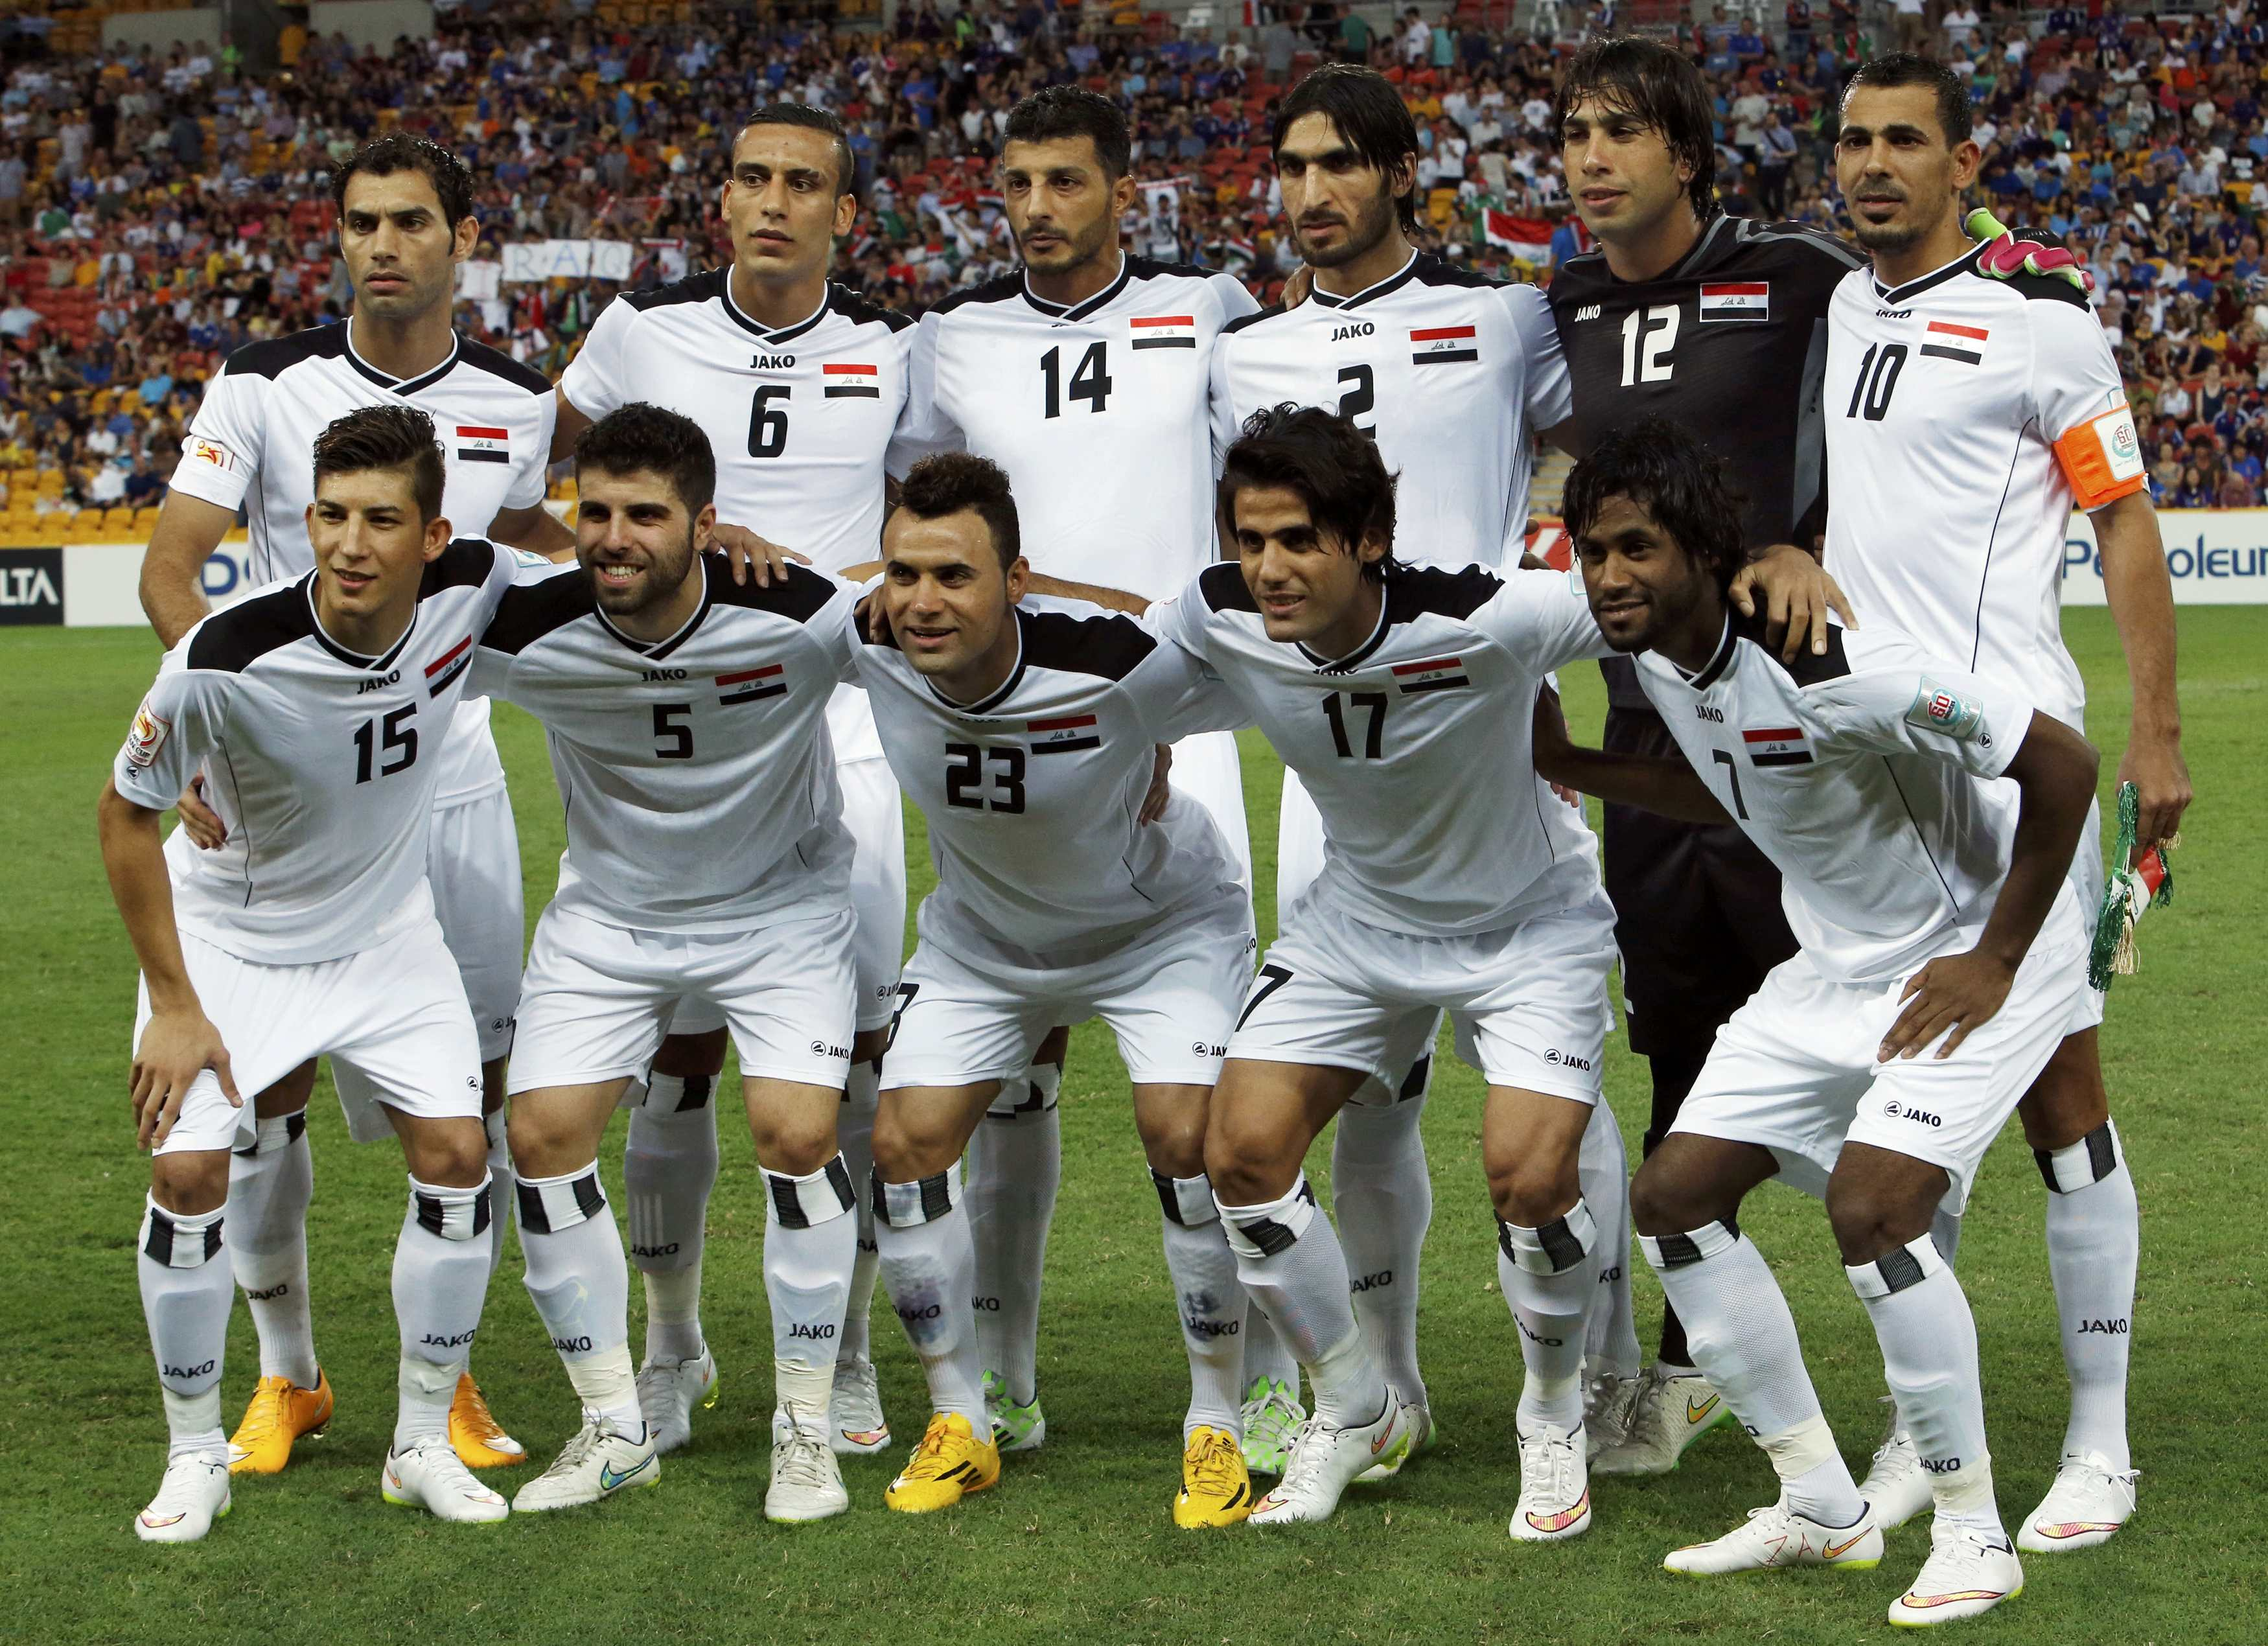 The Iraq team poses for a photo before their Asian Cup Group D soccer match against Japan at the Brisbane Stadium in Brisbane